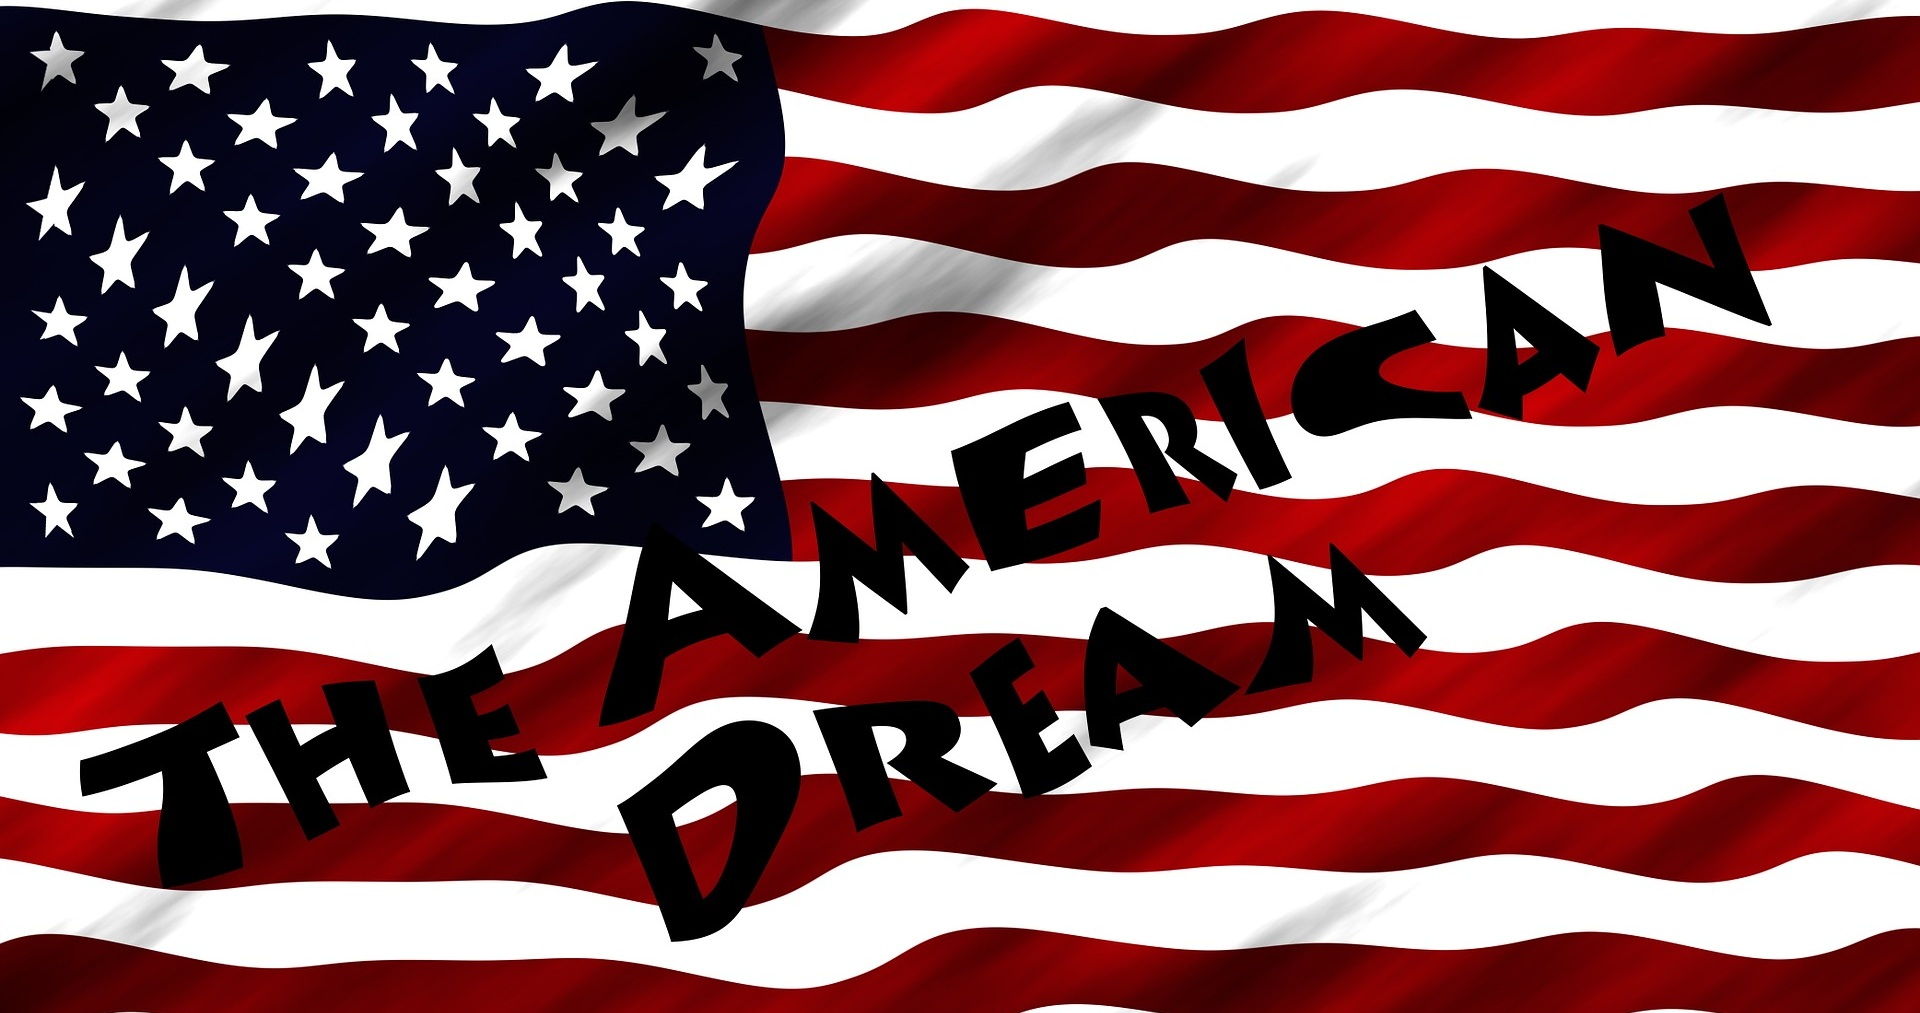 Geralt.    Pixabay   .  U.S. immigration law allows asylees to apply for lawful permanent resident (LPR) status after they have been physically present in the U.S. for at least one year since being granted asylum. Find out the other requirements and the process for asylees to obtain a green card in the United States.